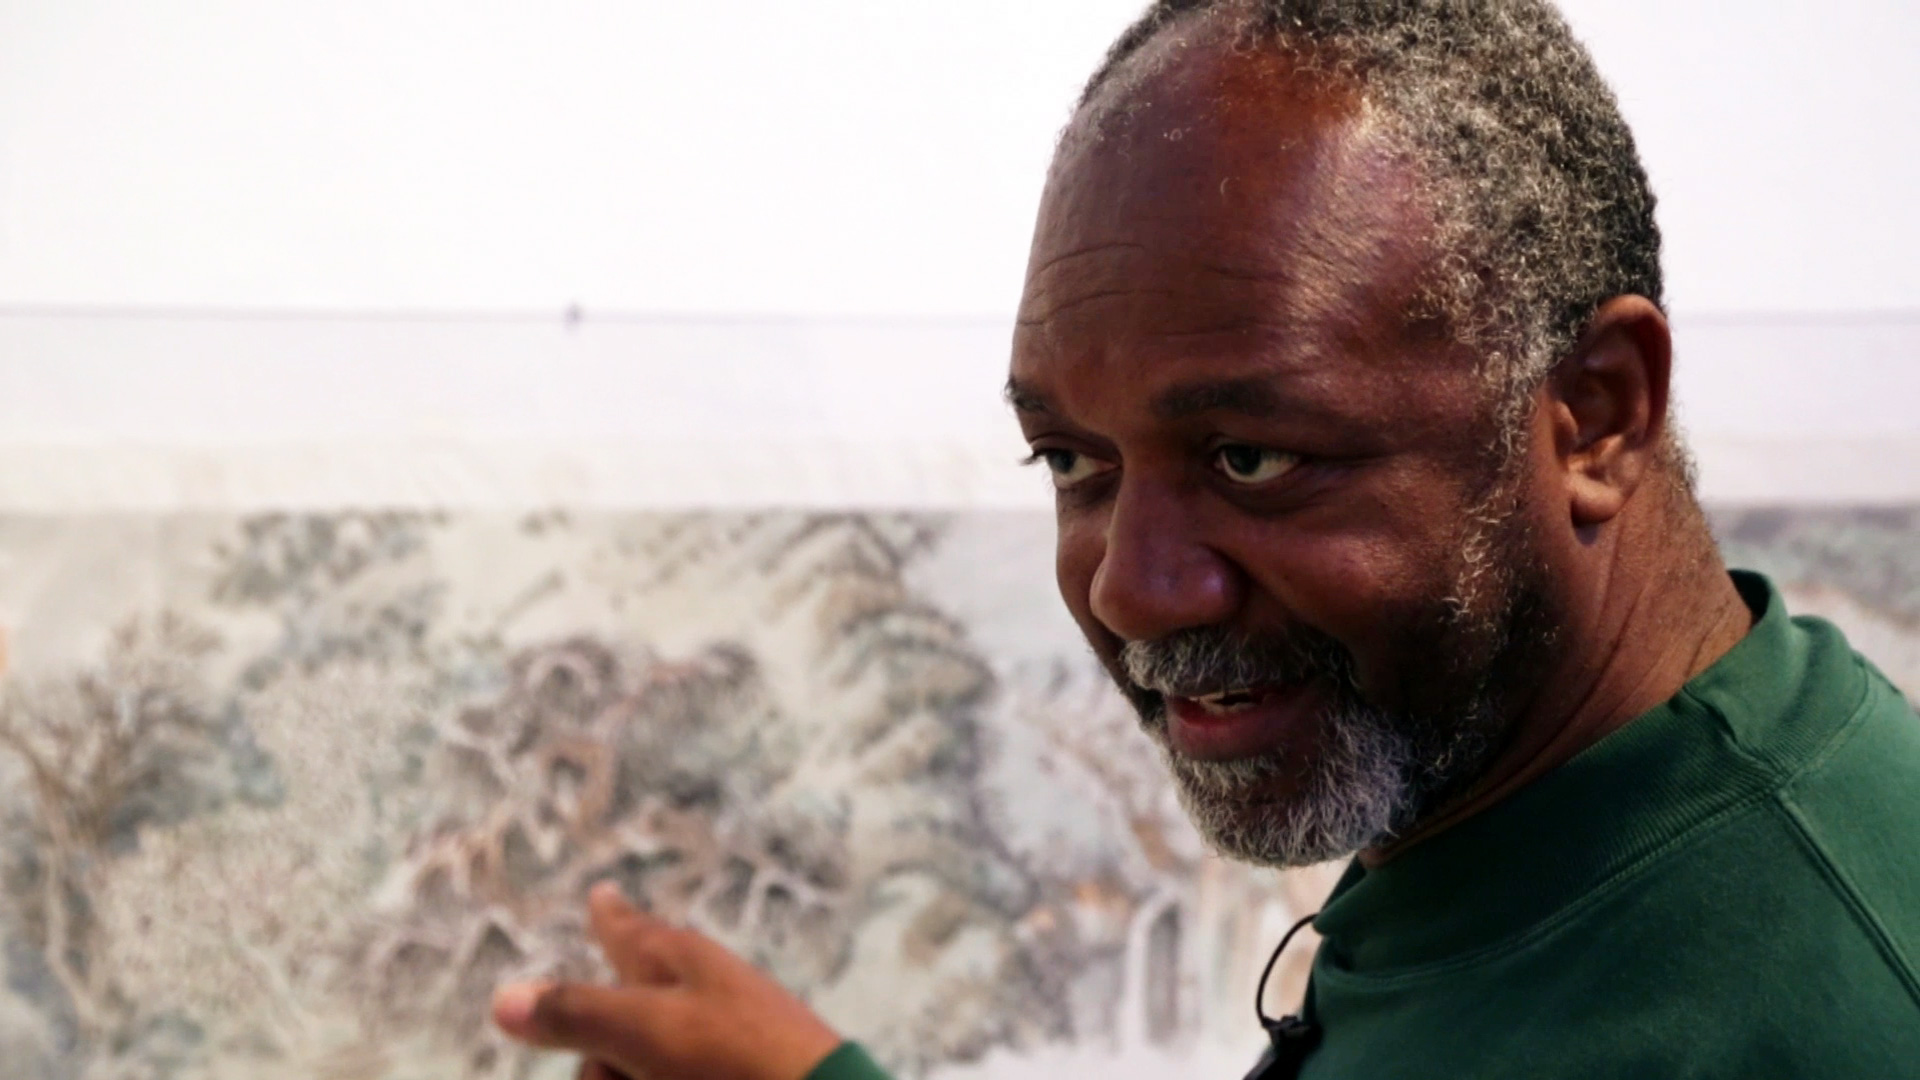 Kerry James Marshall discussing the work of Yun-Fei Ji at the Prospect.3 biennial in New Orleans, Louisiana. Production still from the series ART21 Artist to Artist. © ART21, Inc. 2014. Cinematography: Ian Forster.